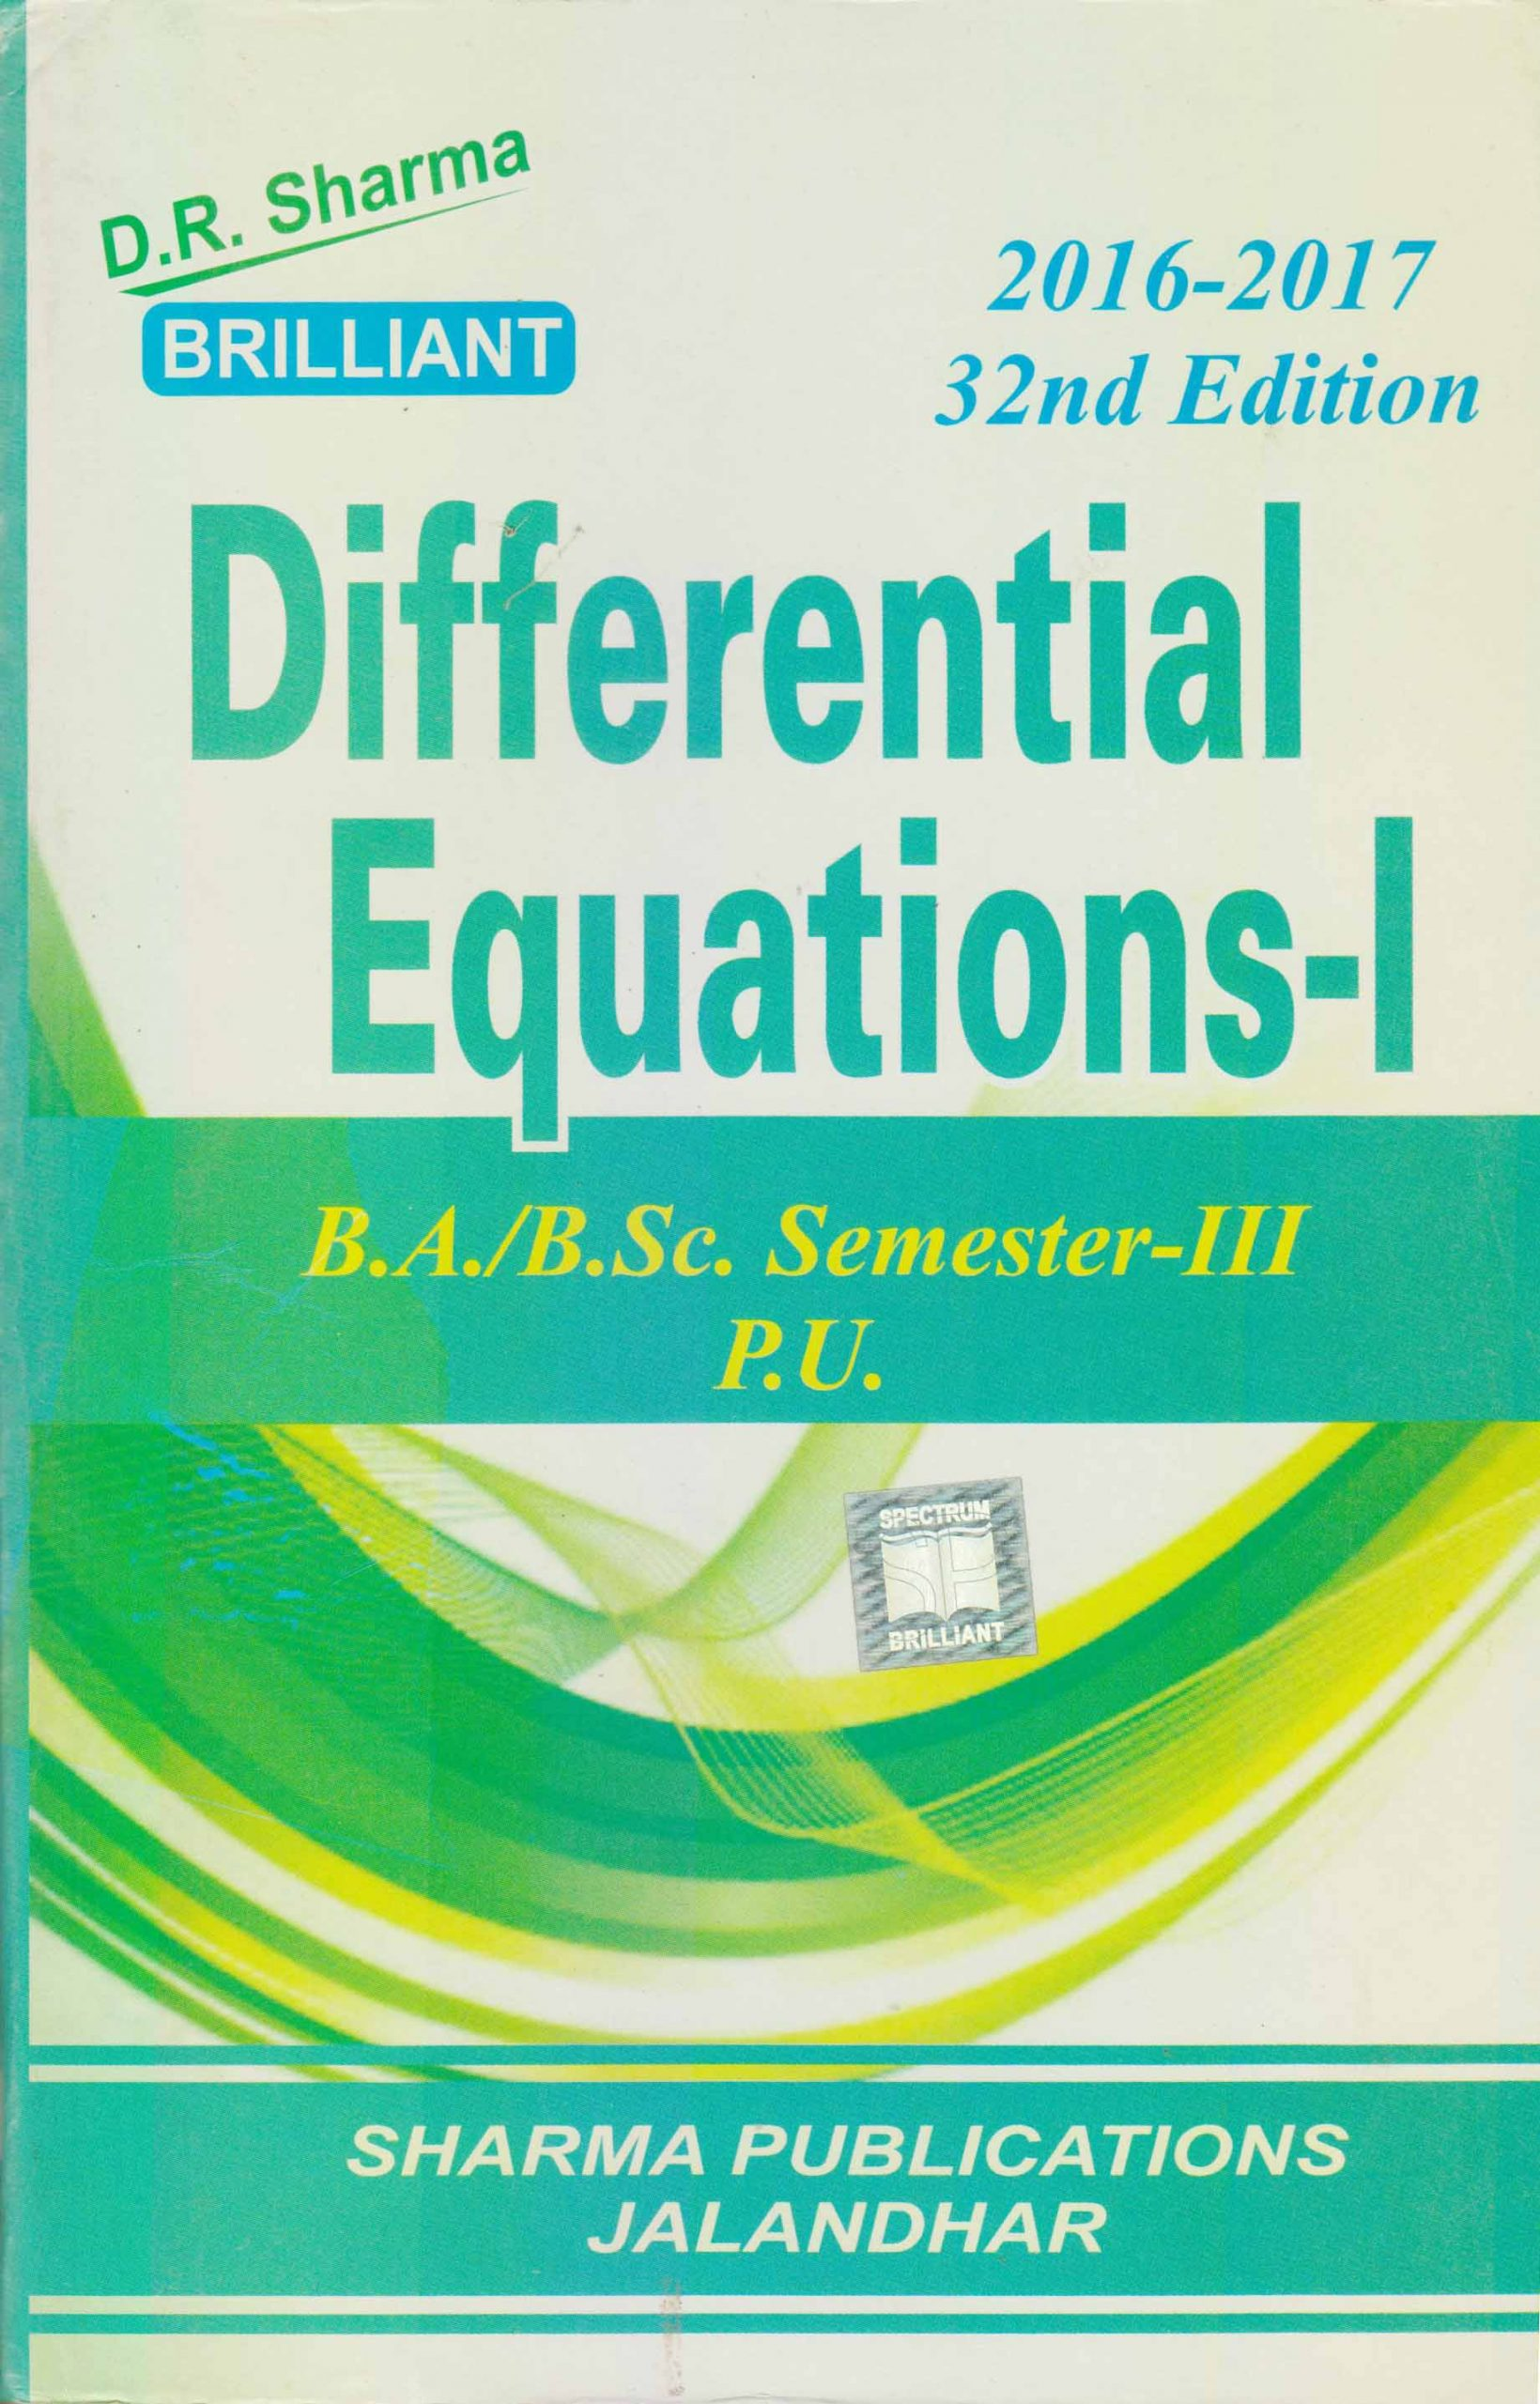 Differential Equations-I for B.A. / B.Sc., Sem. 3 (P.U.) by D.R. Sharma